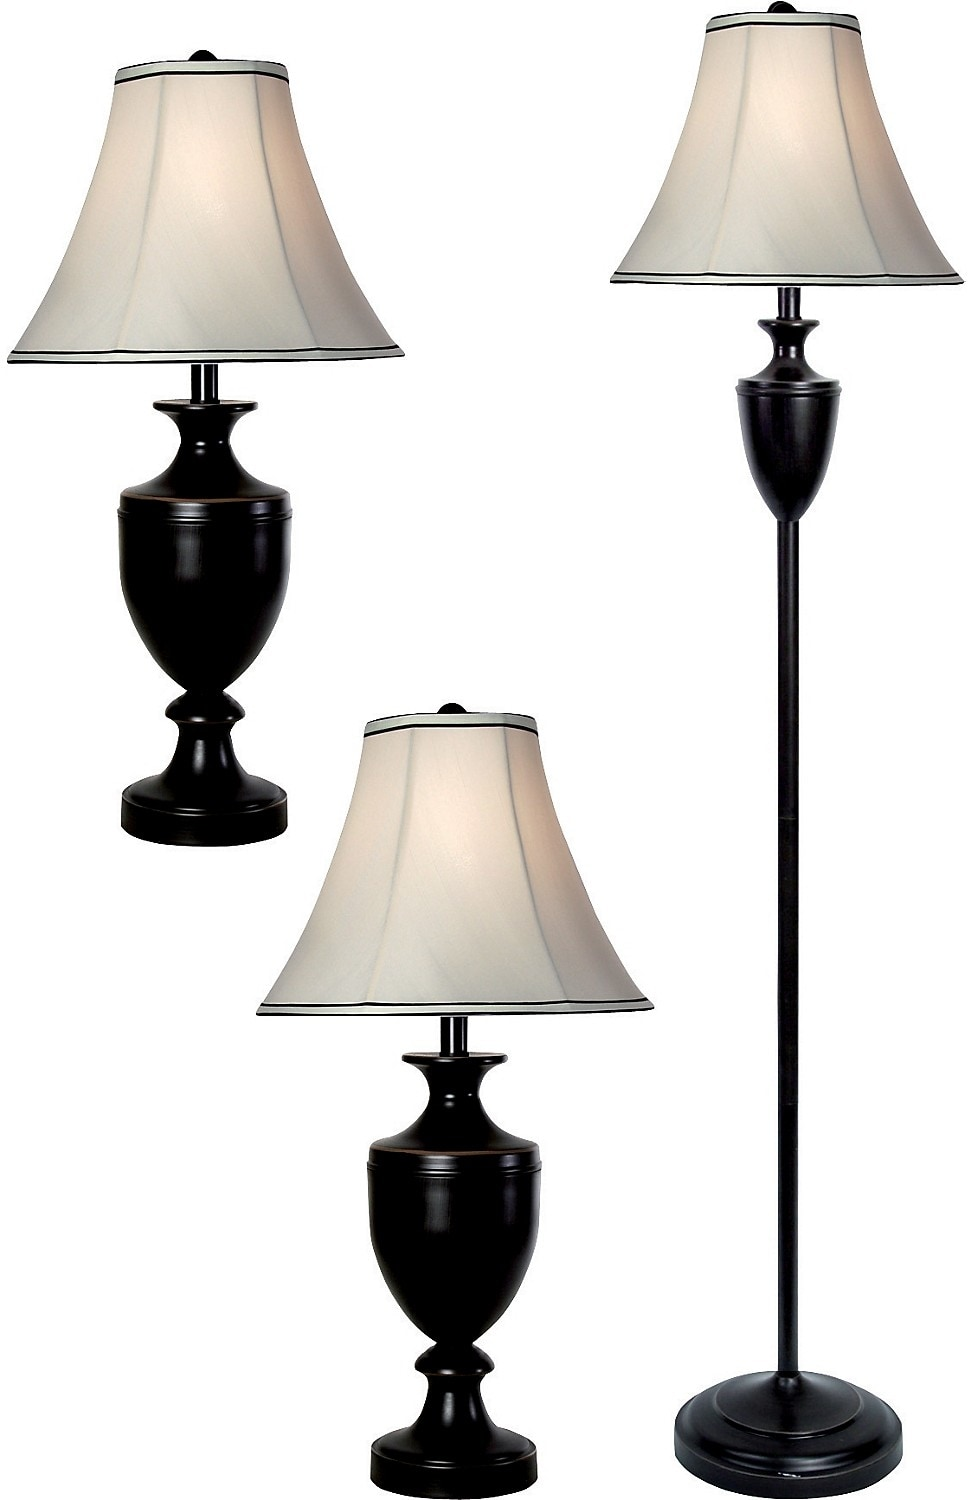 Home Accessories - Bronze-Wood Finish 3-Piece Floor and Two Table Lamps Set